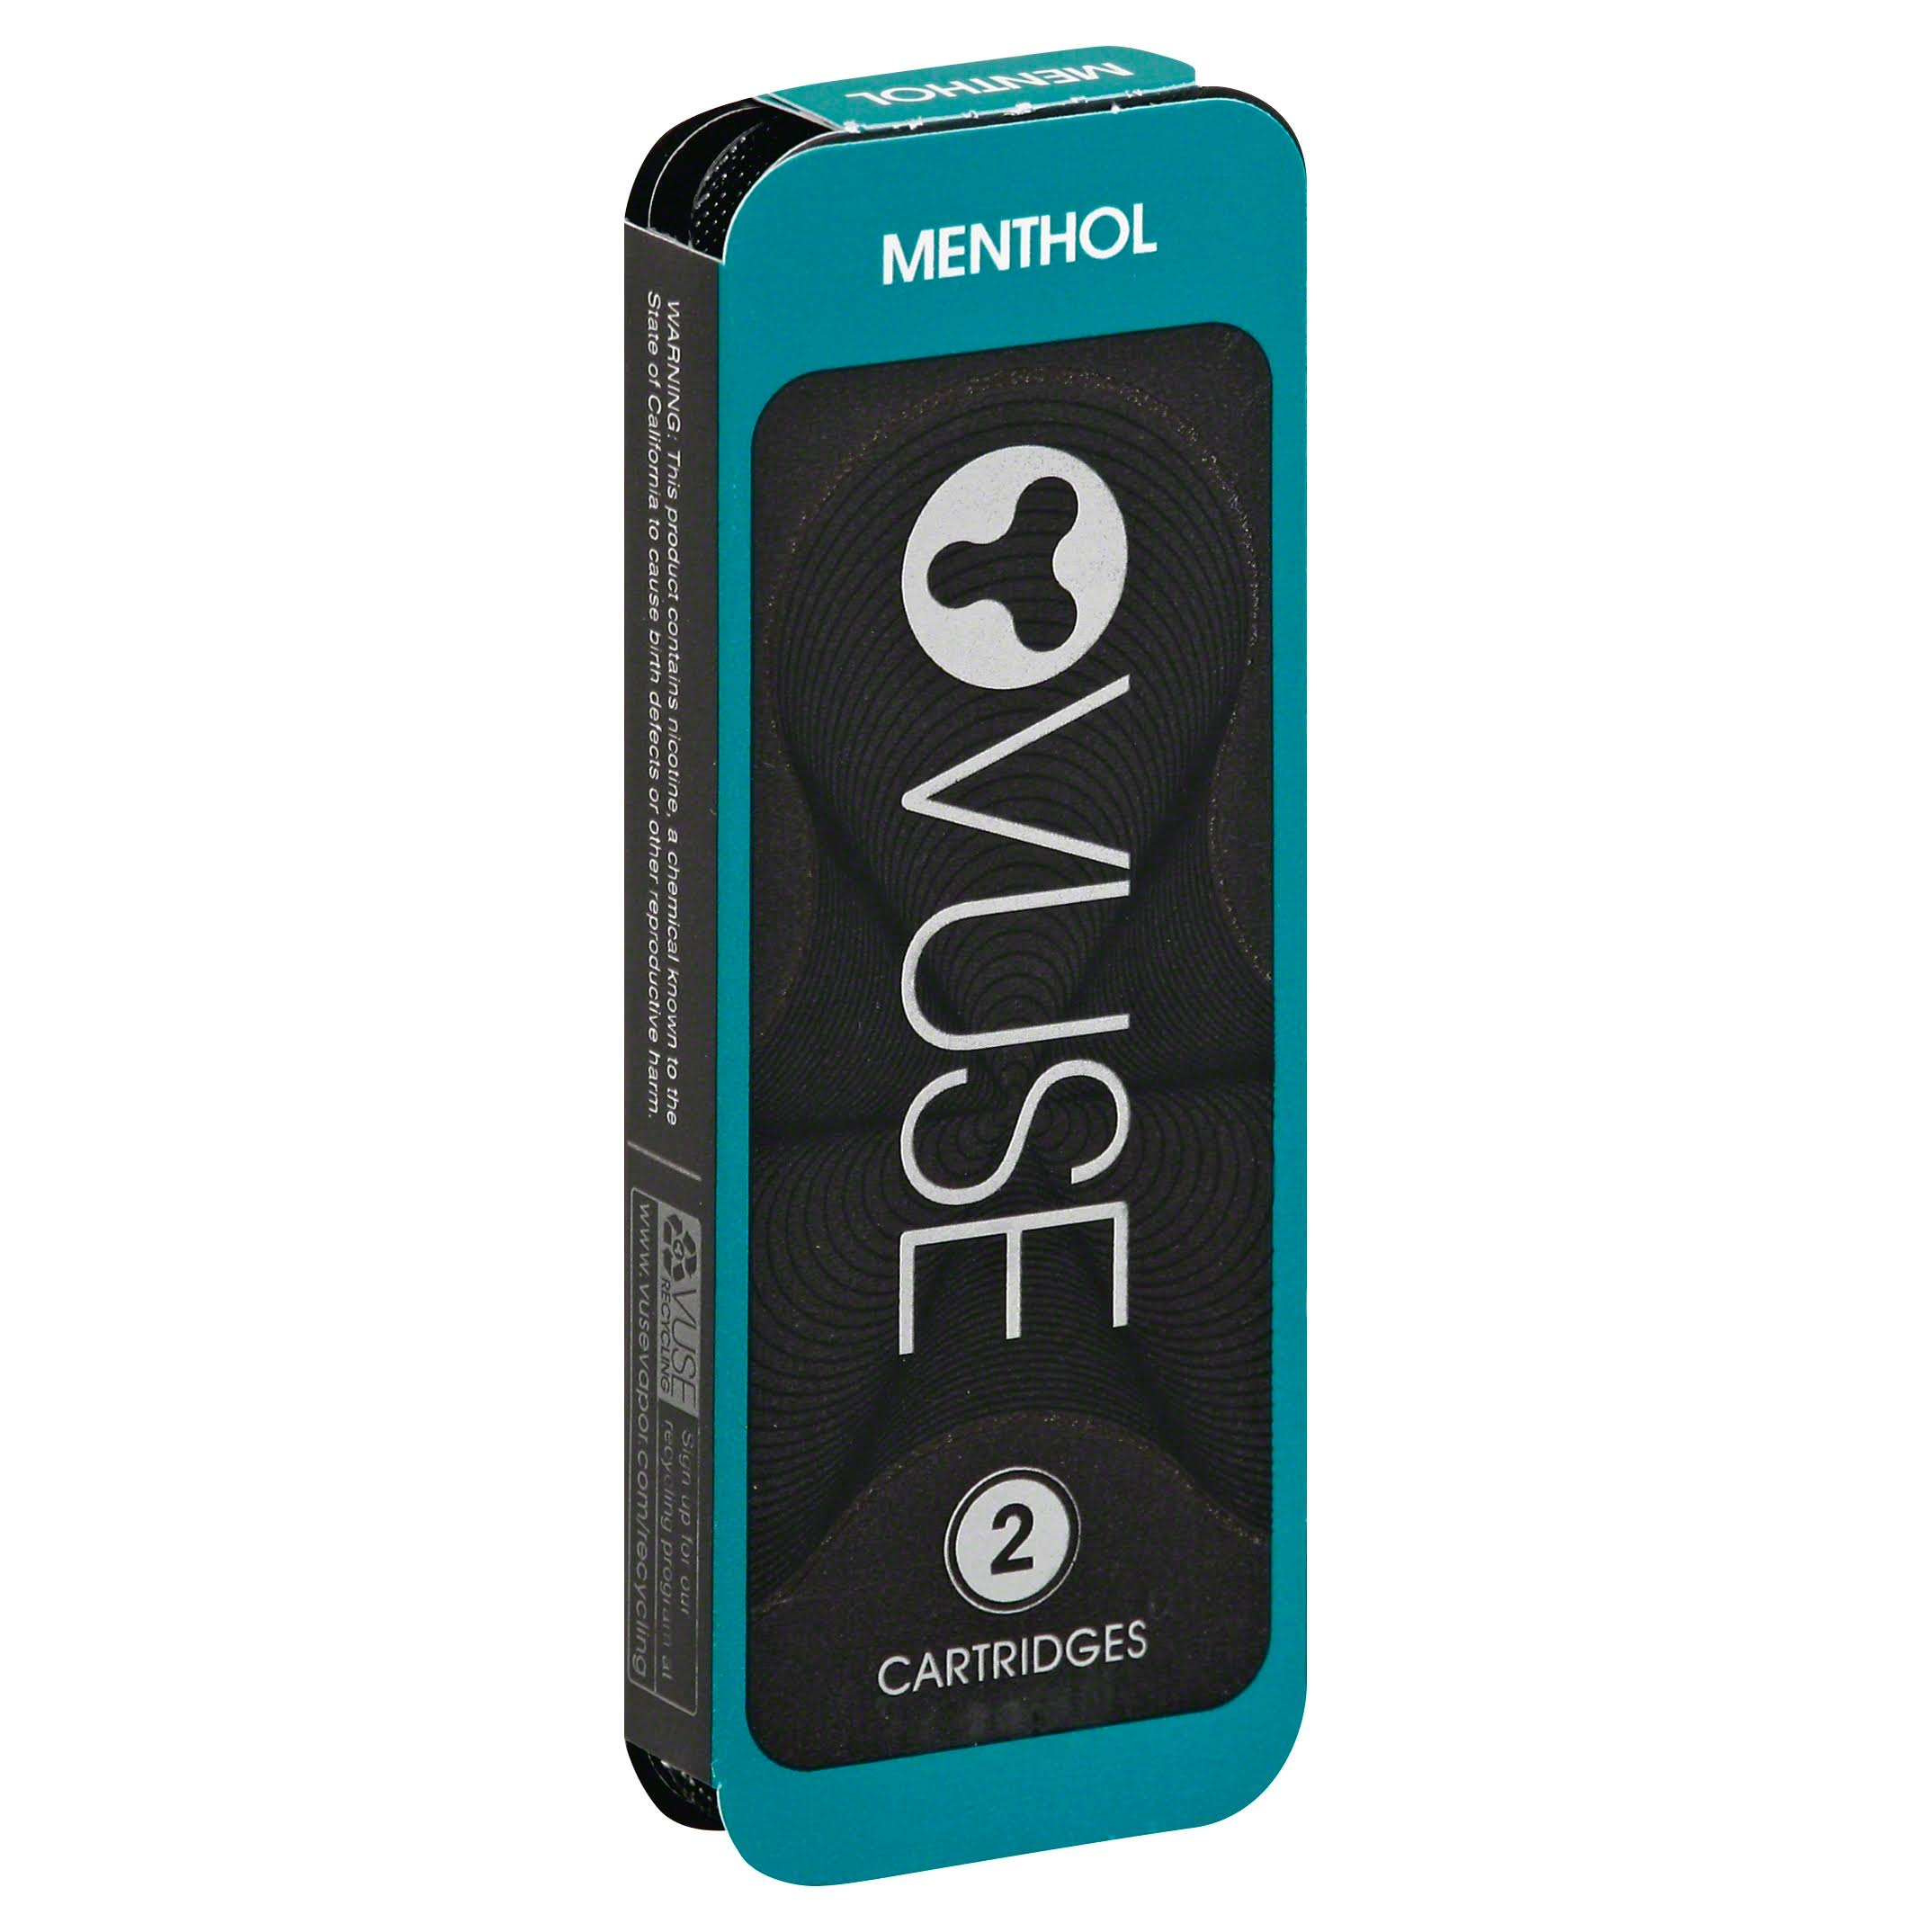 Vuse Cartridges, Menthol - 2 cartridges